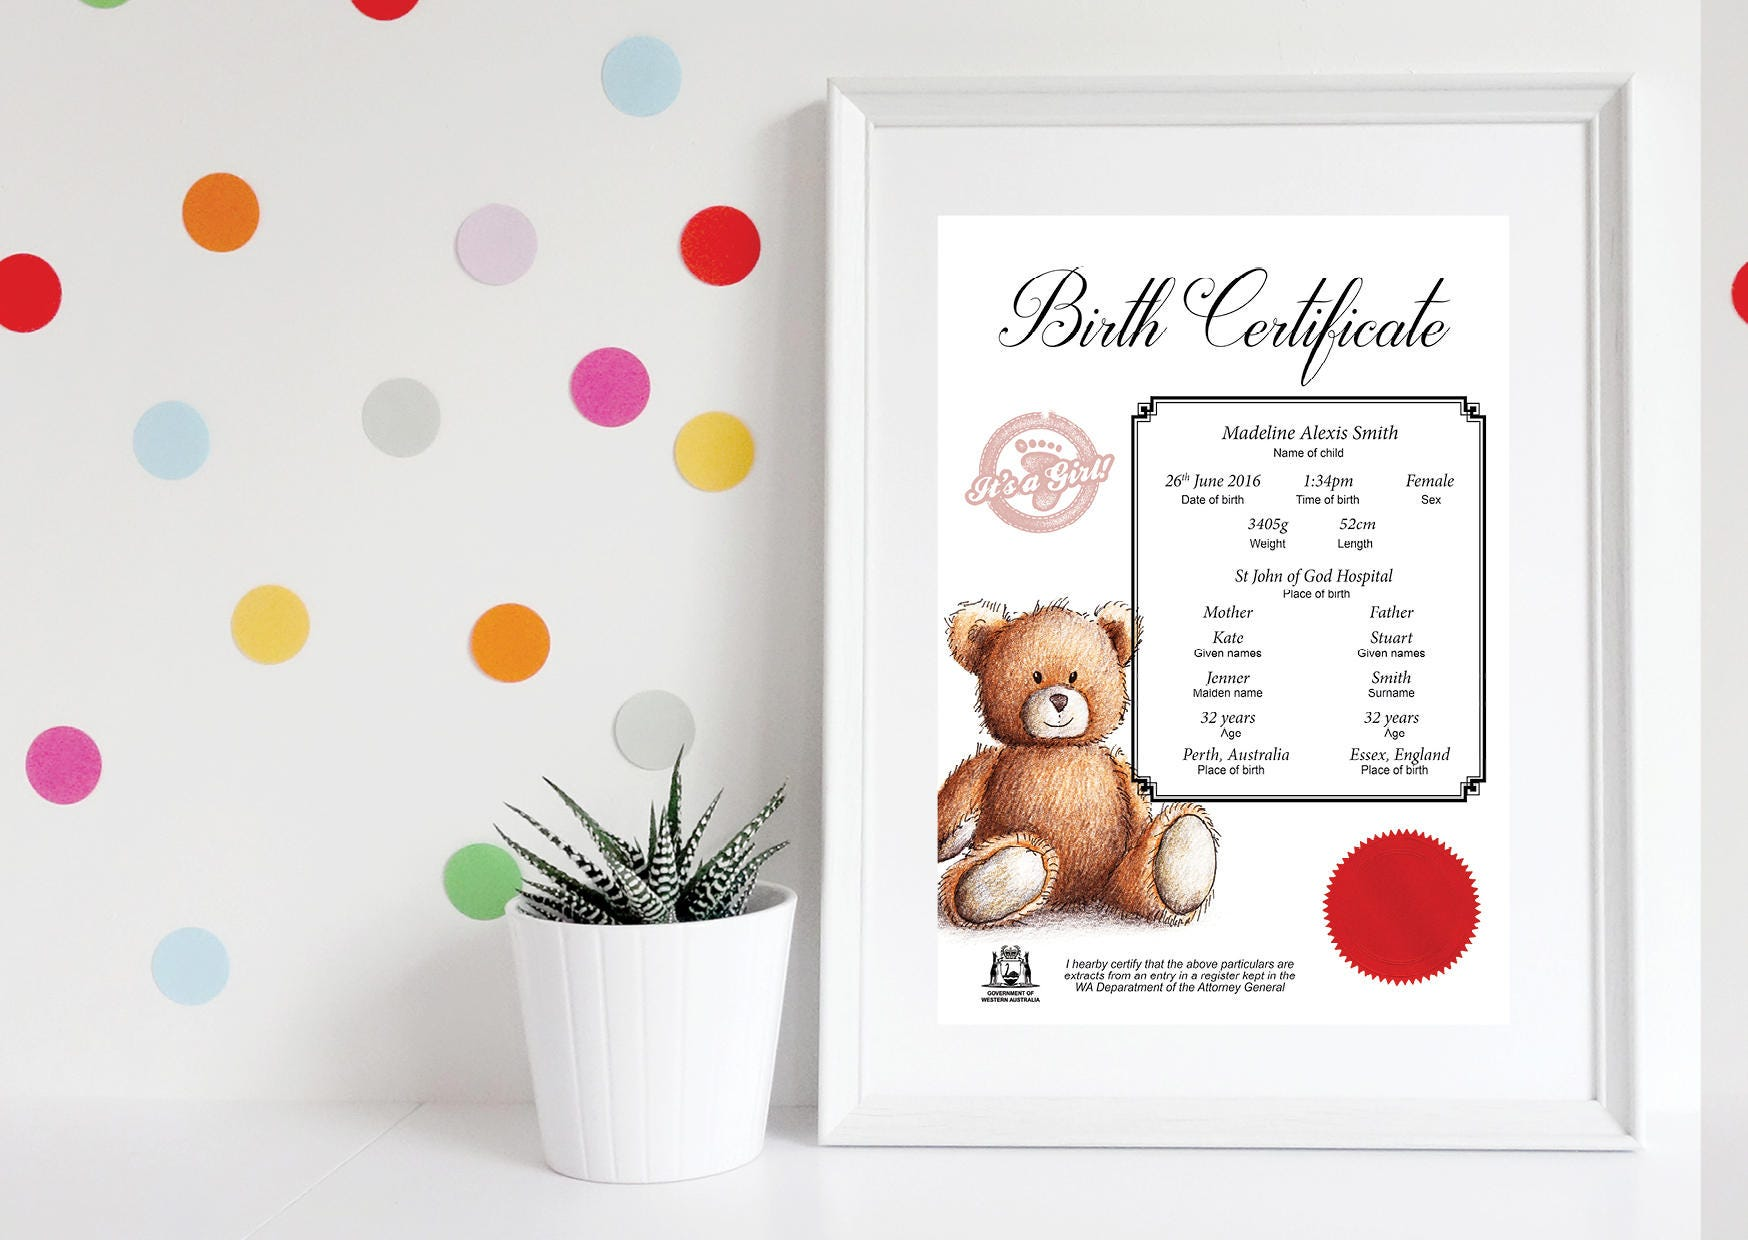 Printable birth certificate baby girl birth certificate zoom aiddatafo Choice Image